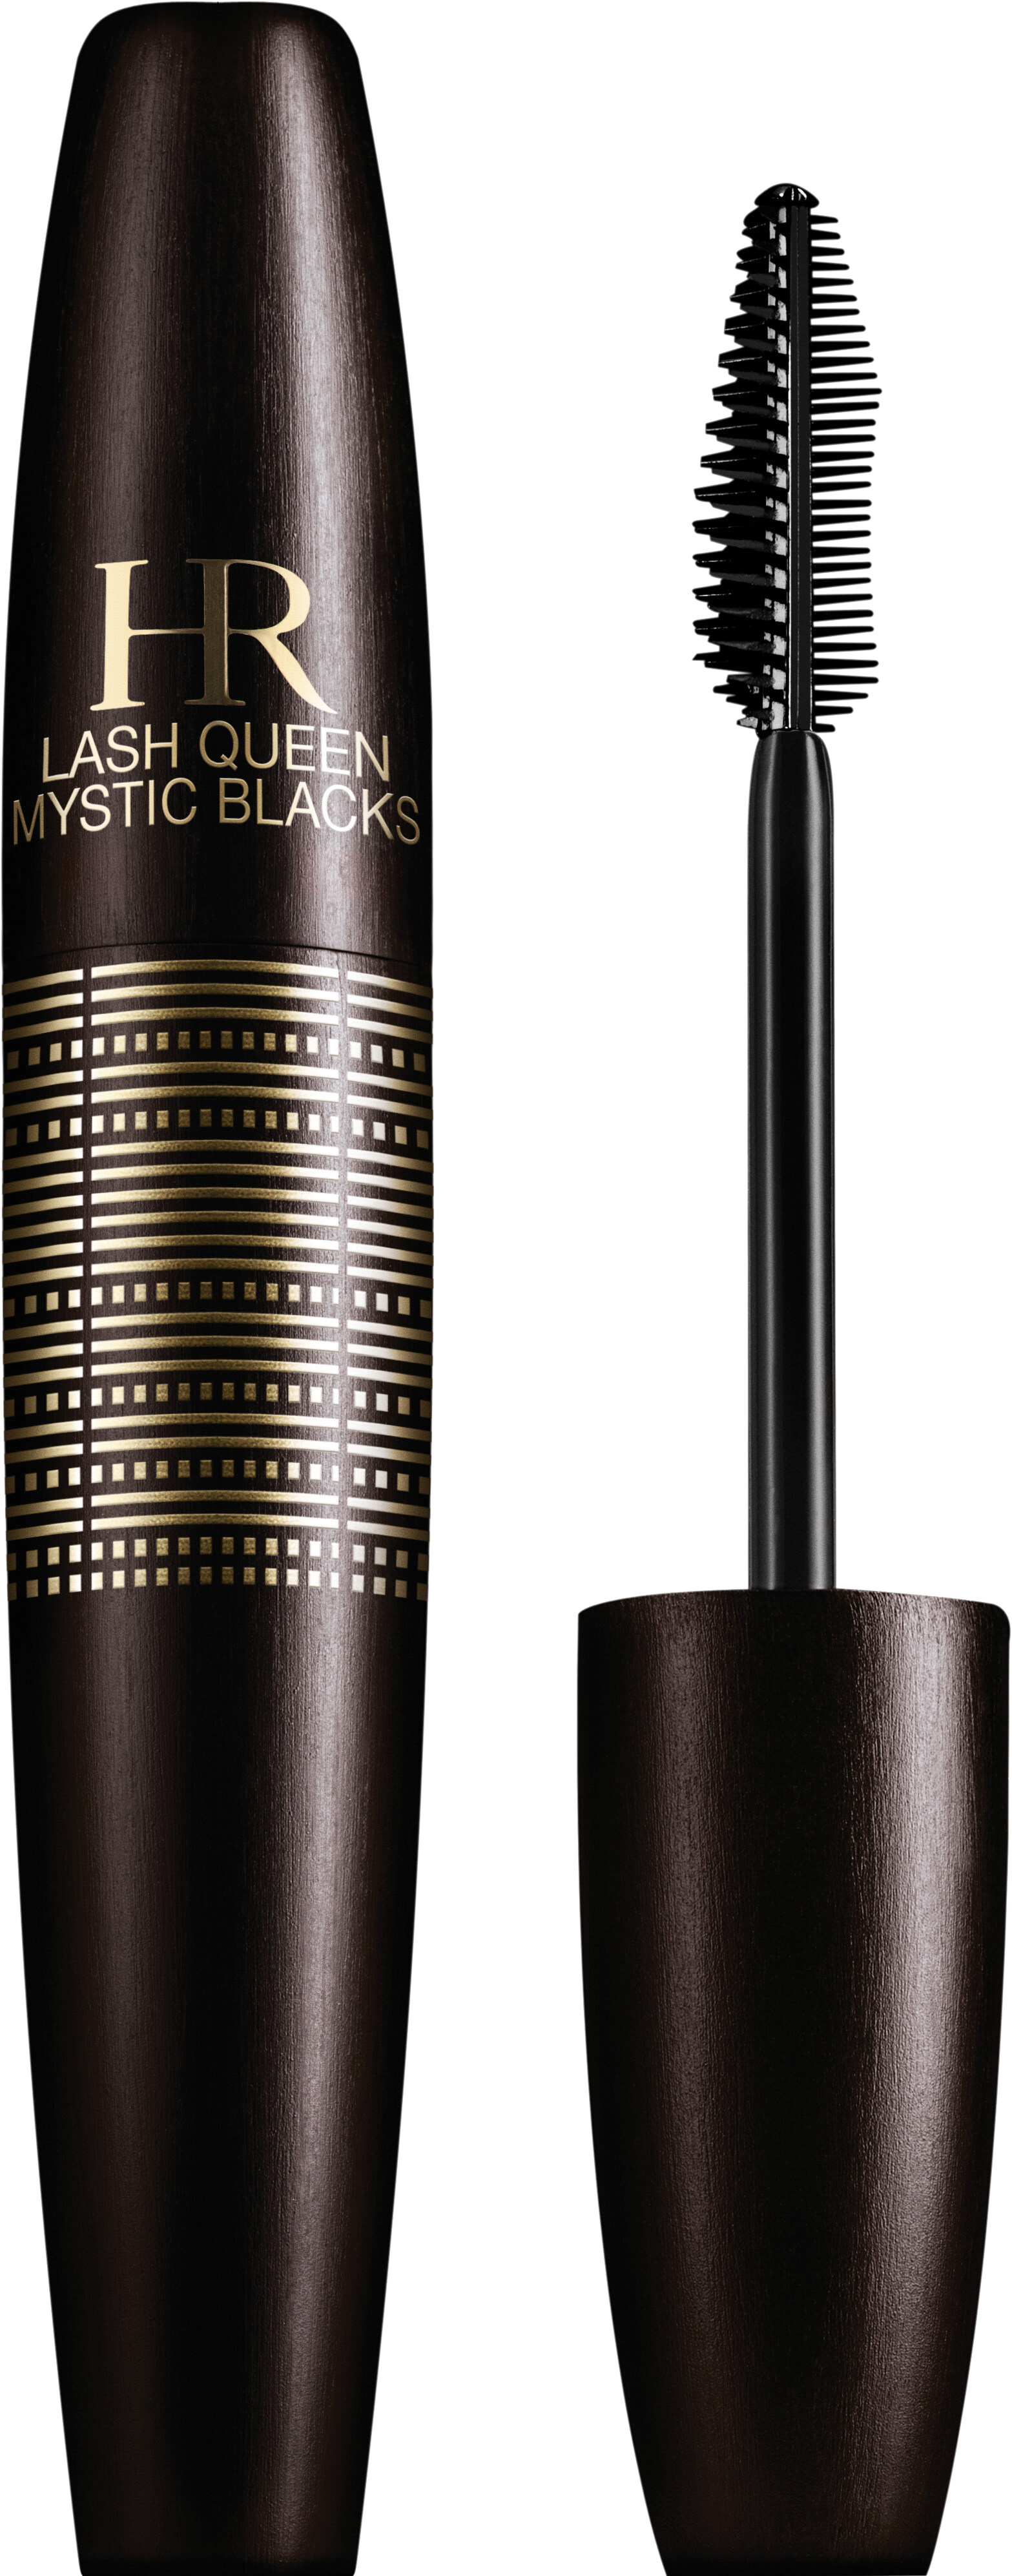 HelenaRubinstein Lash Queen Mystic Blacks($330)